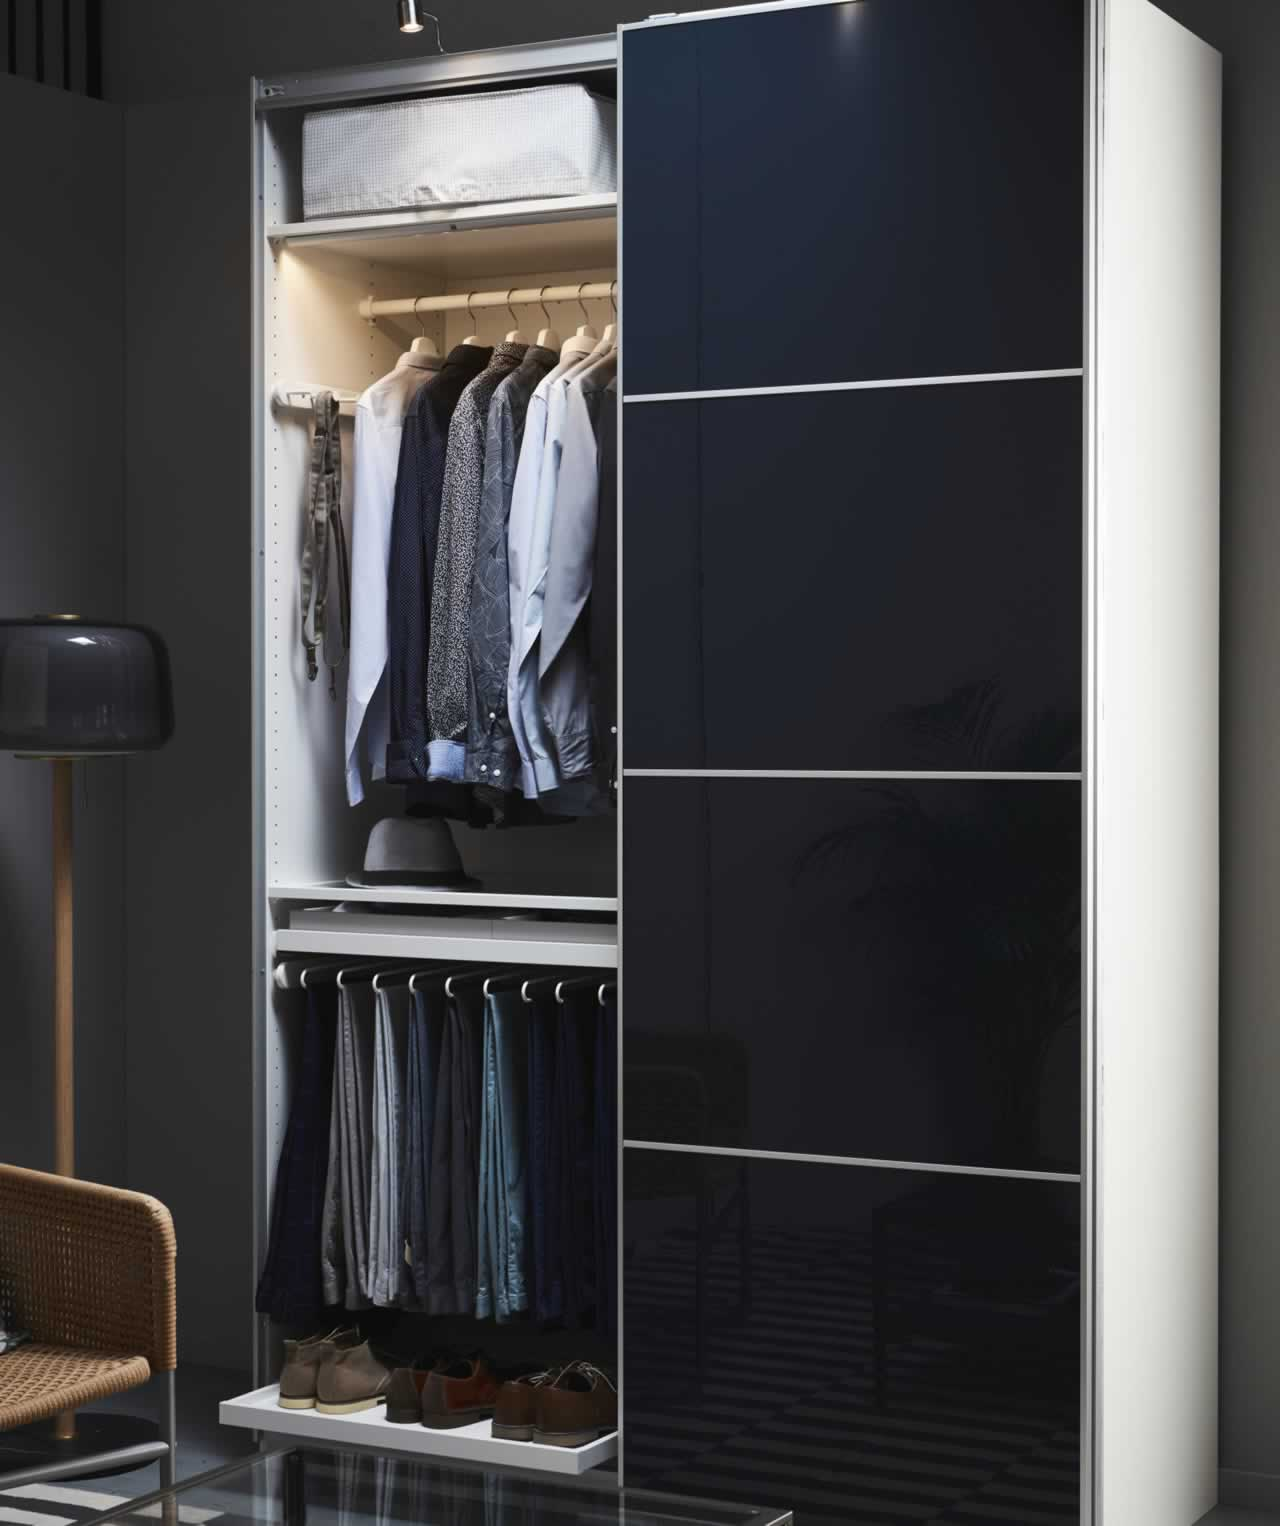 IKEA Ideas - Three wardrobes tailored for me, myself and I!